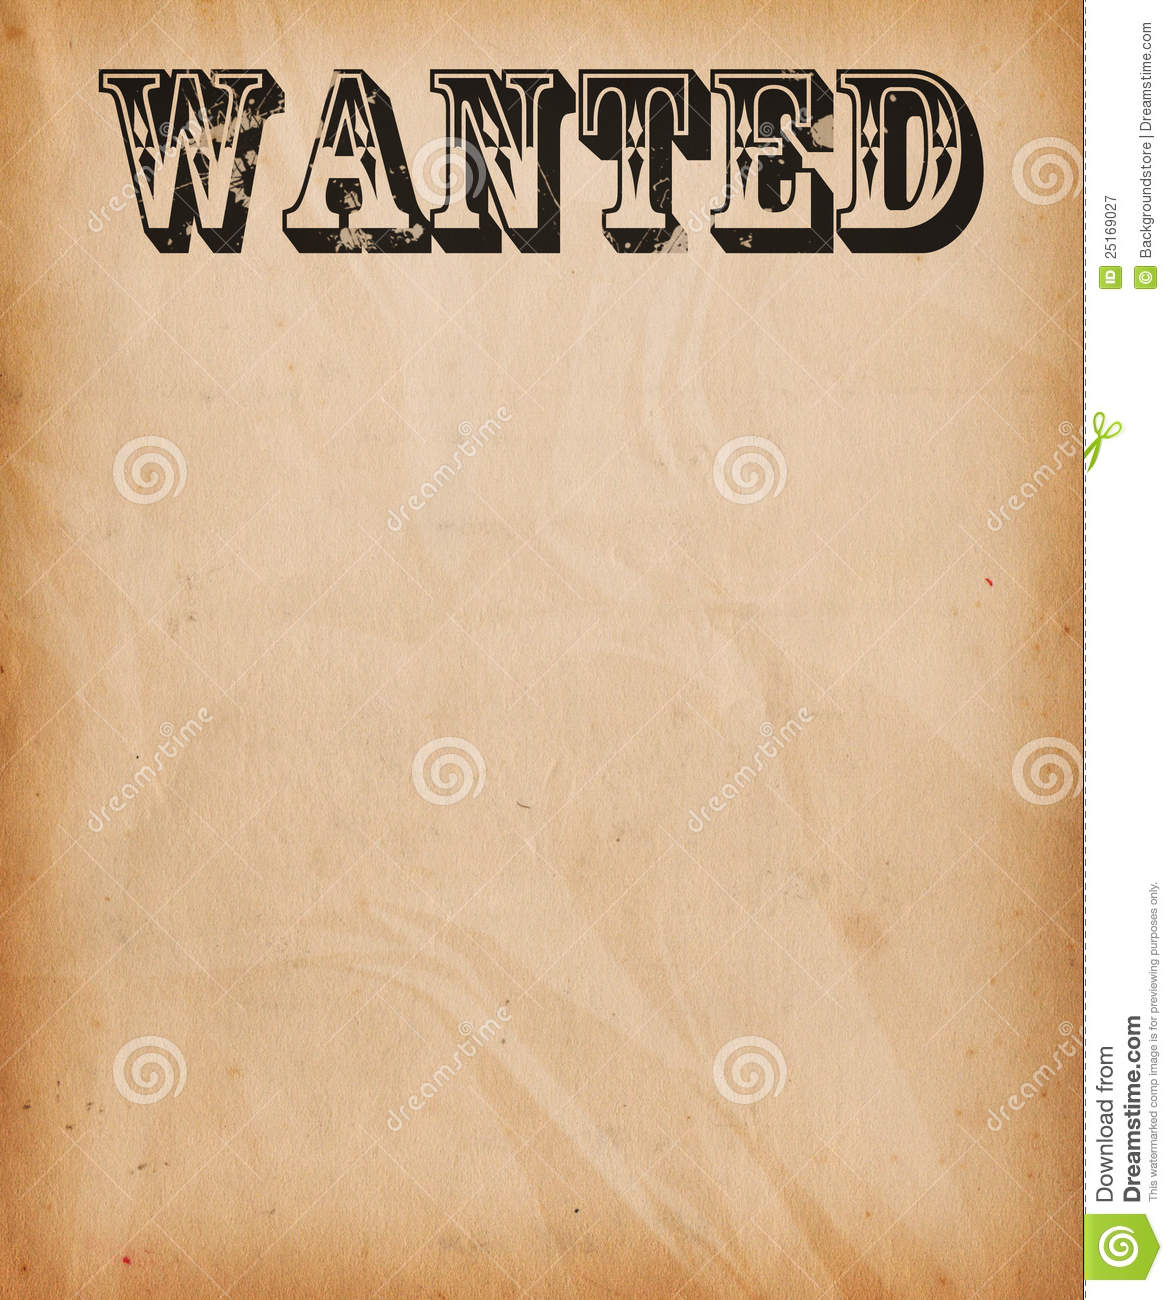 Vintage Wanted Poster Background Royalty Free Stock ...